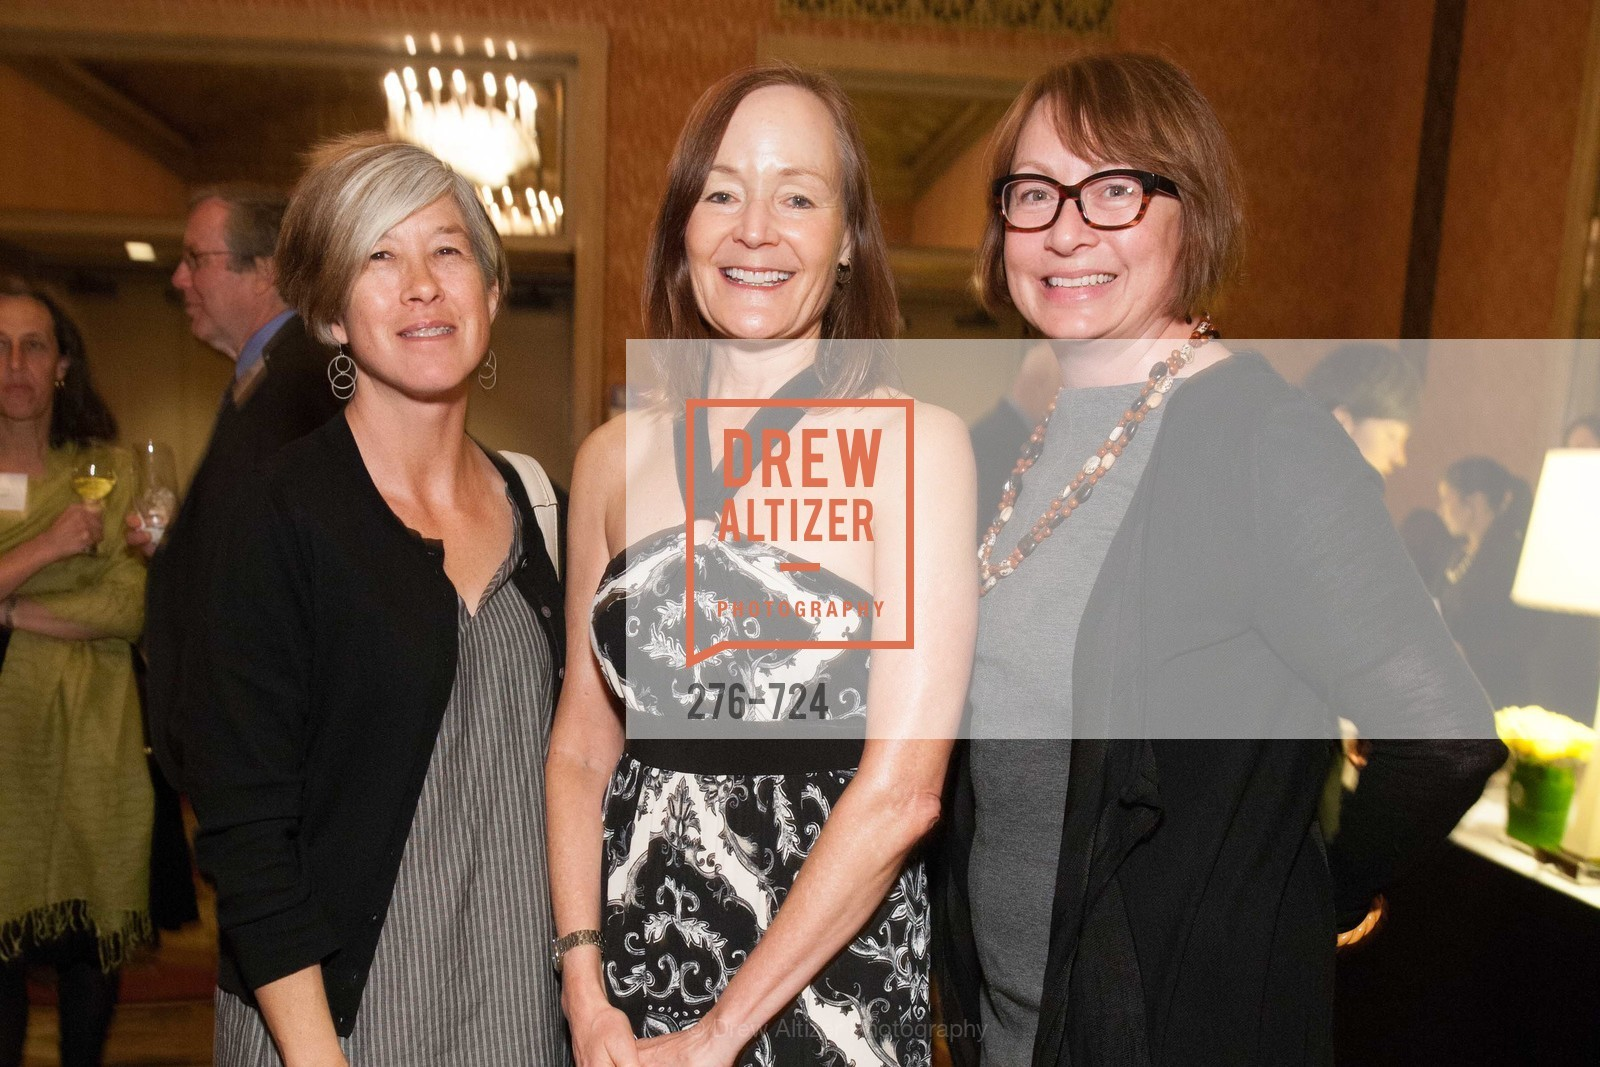 Kim Piechota, Noreen Biero, Liz Pocock, TNDC's 34th Annual Birthday Dinner, US, May 12th, 2015,Drew Altizer, Drew Altizer Photography, full-service agency, private events, San Francisco photographer, photographer california